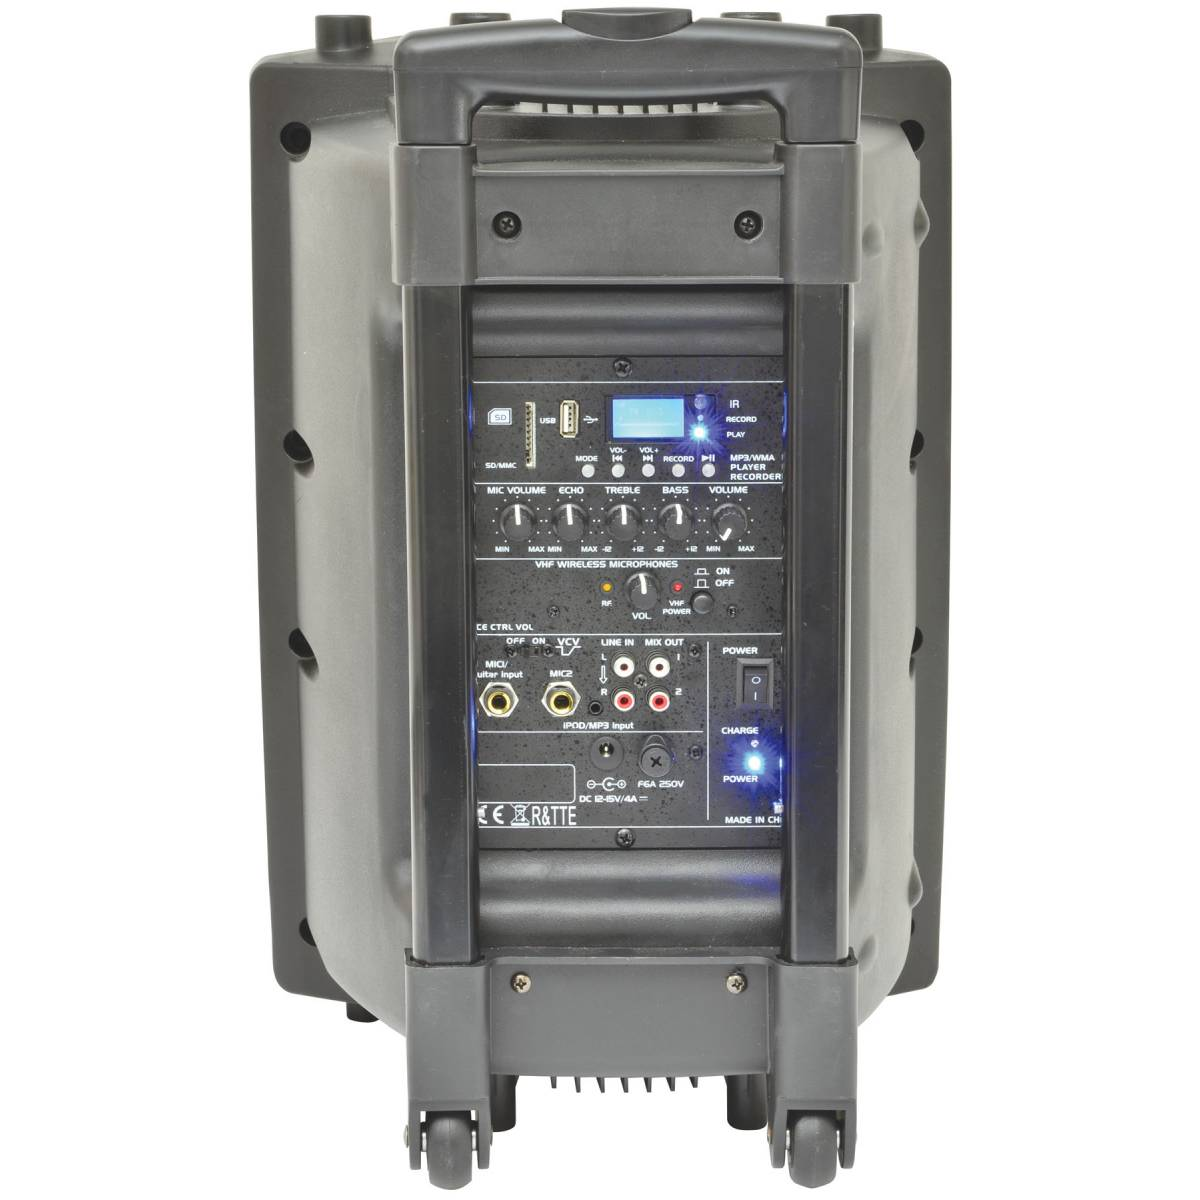 qtx qr10pa portable pa system complete pa system from inta audio uk. Black Bedroom Furniture Sets. Home Design Ideas